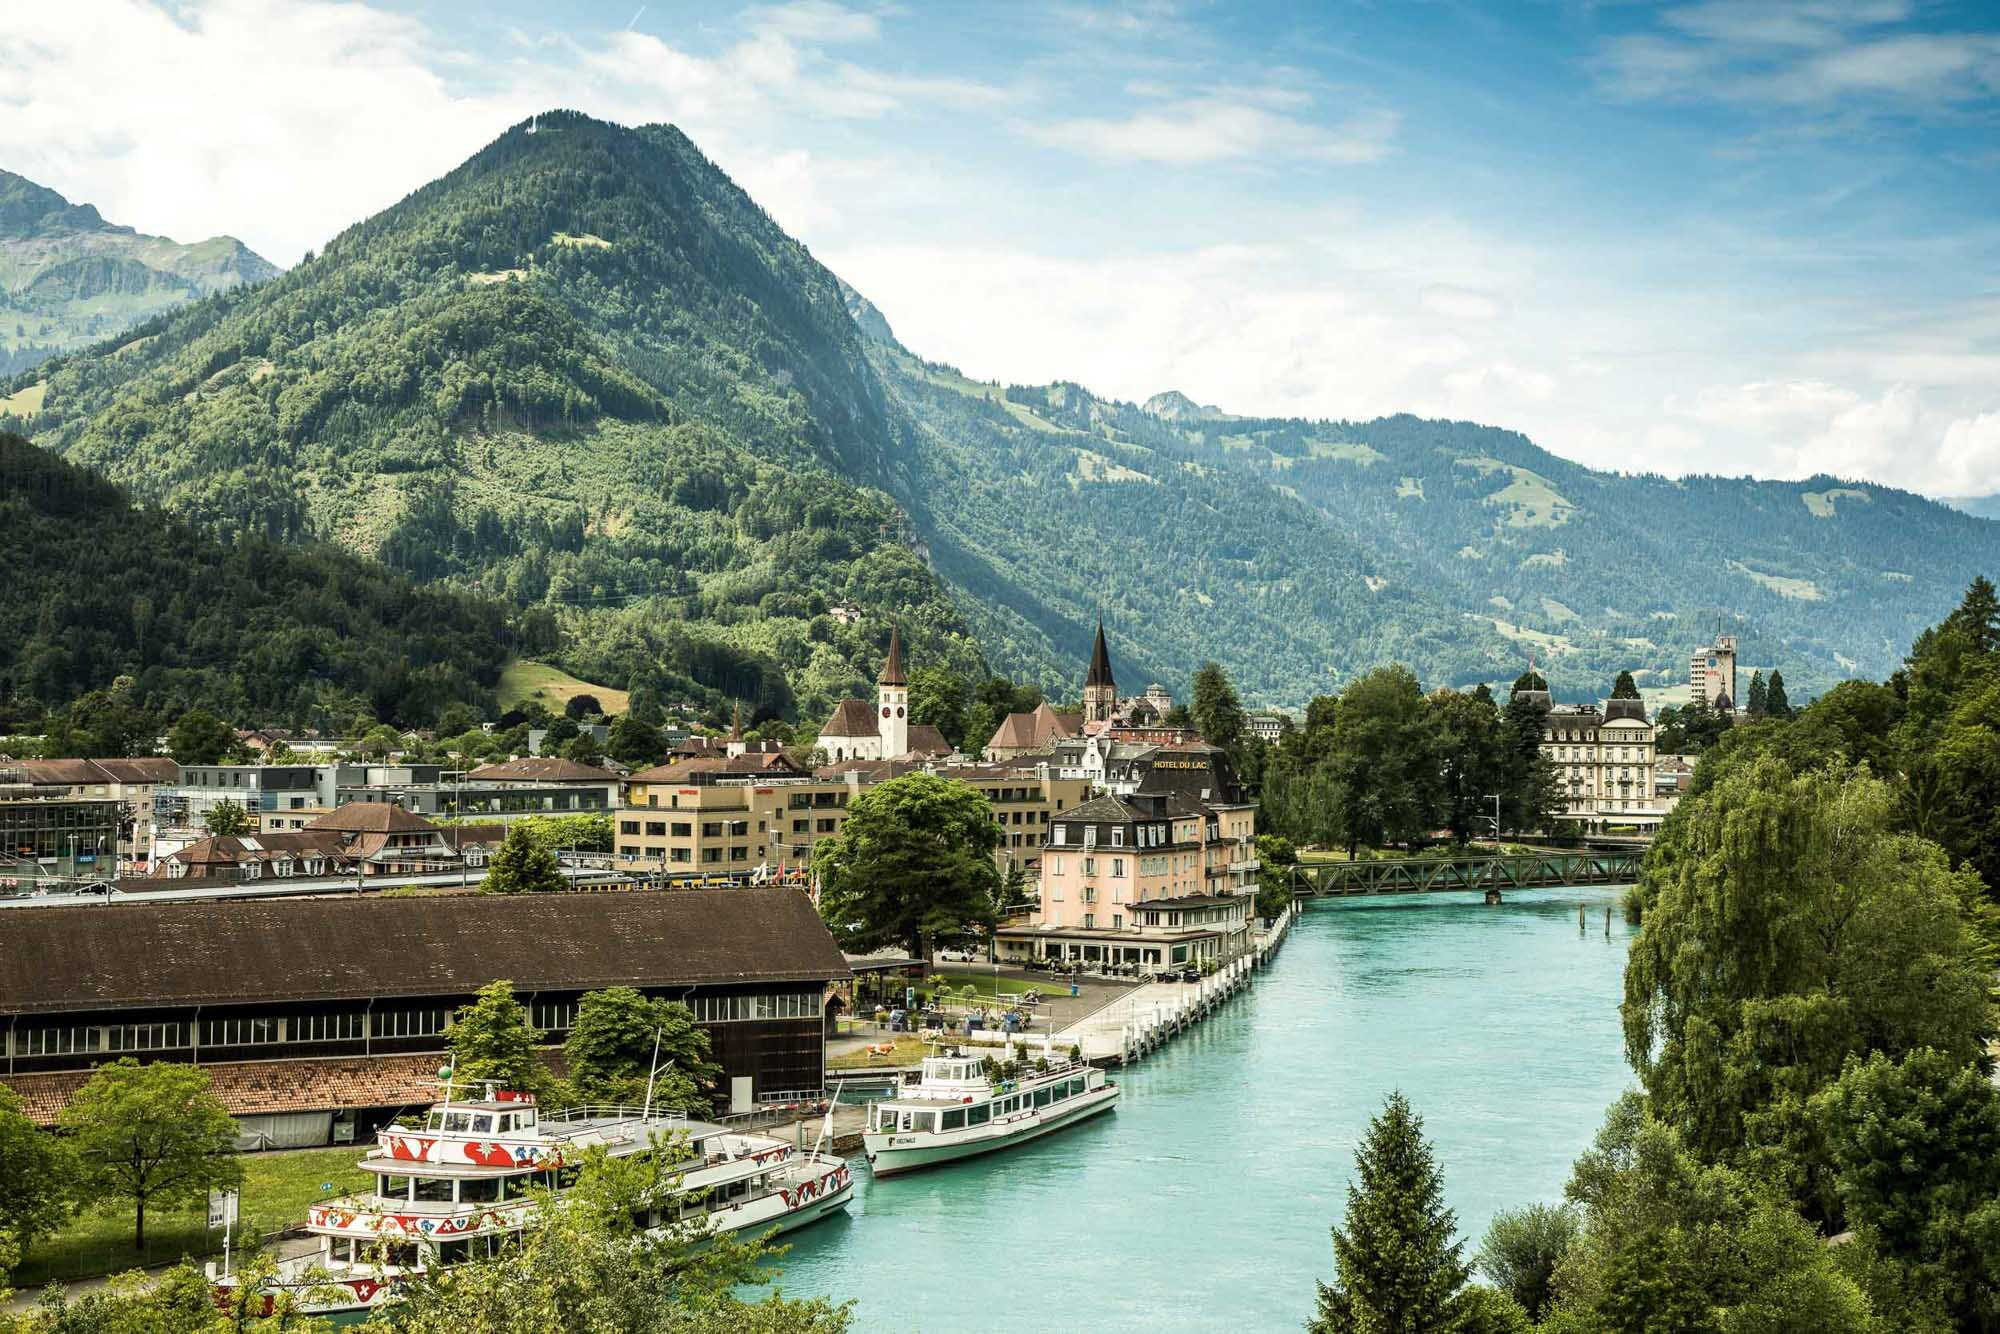 Ship harbor and railway station Interlaken Ost. Copyright by: Switzerland Tourism